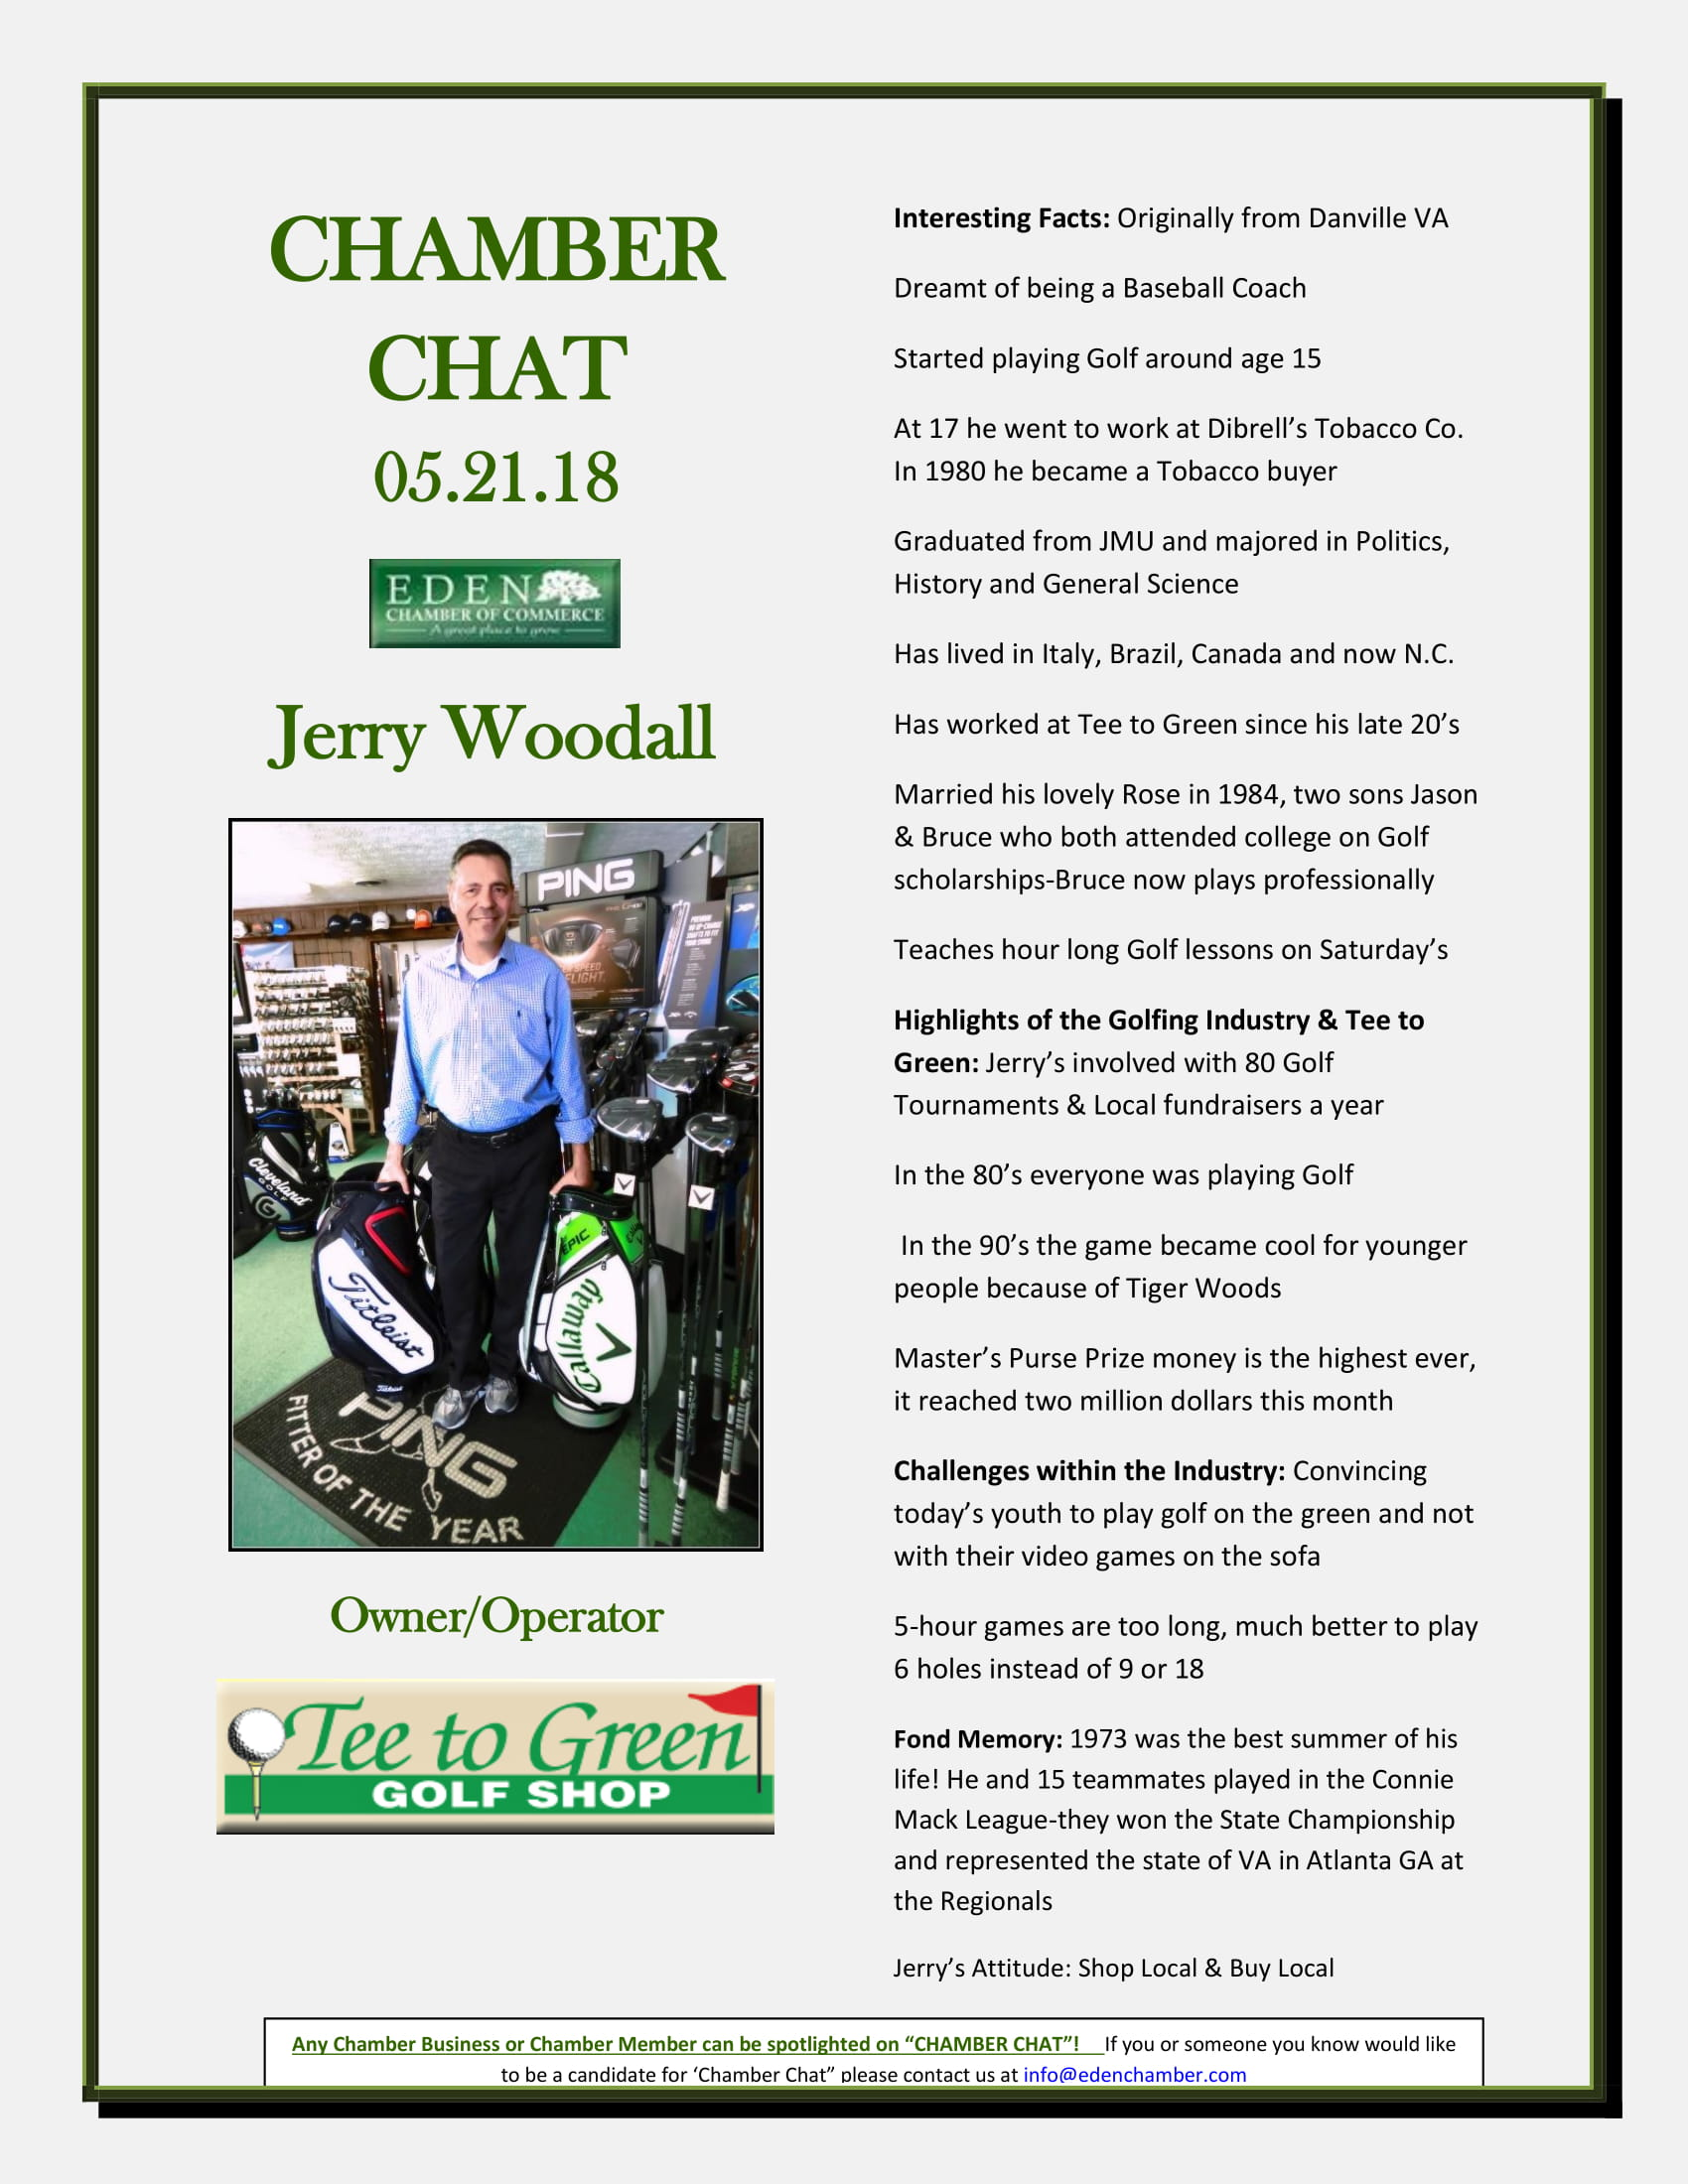 CHAMBER-CHAT-Tee-to-Green-Jerry-Woodall-(2)-1